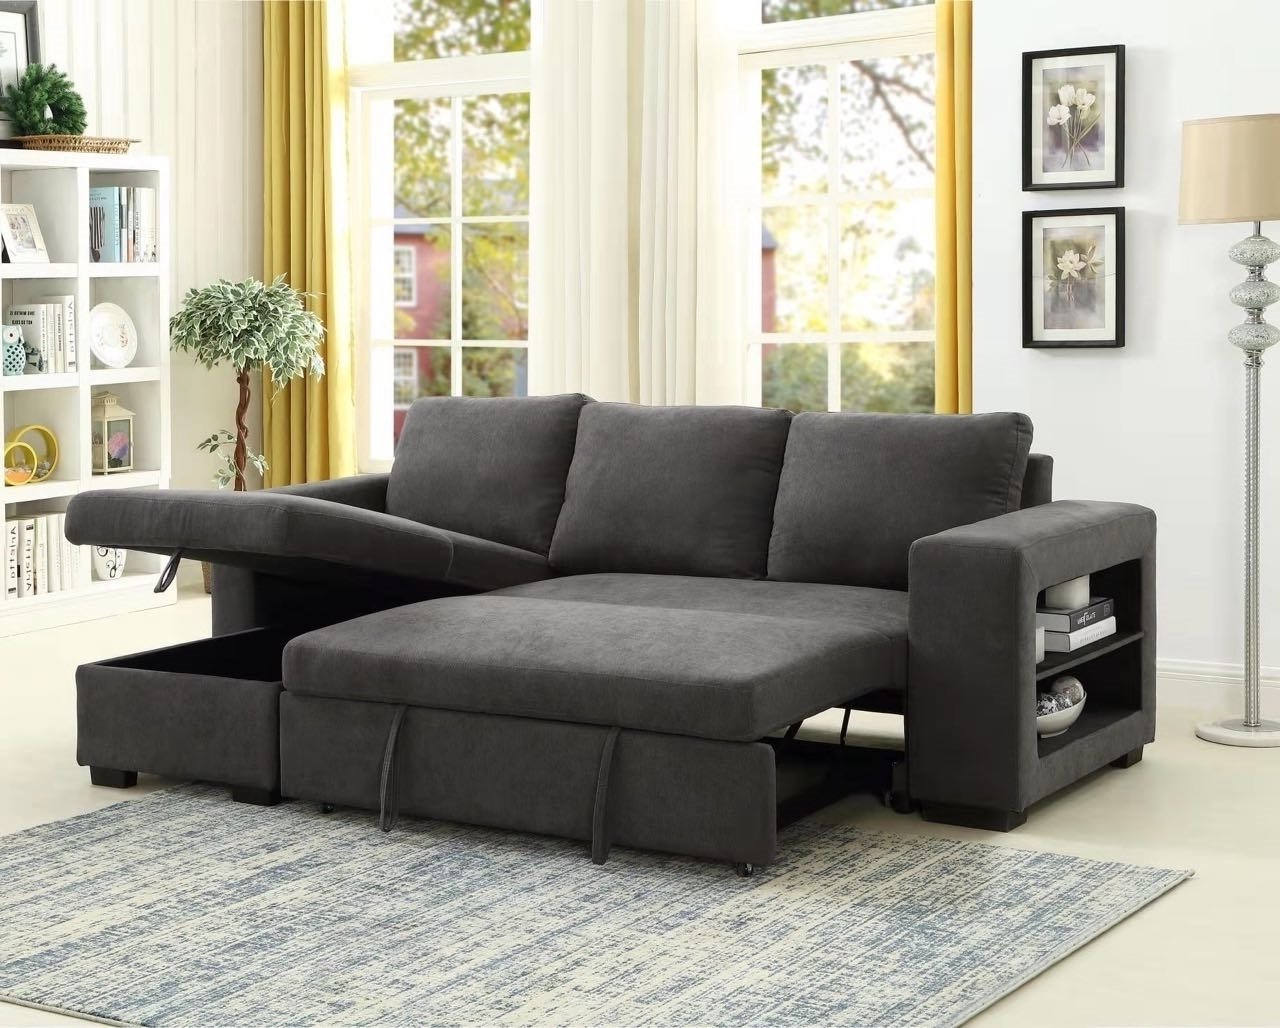 Lucena Reversible Sectional Sofa/sofa Bed With Storage Throughout Well Known Hartford Storage Sectional Futon Sofas (View 10 of 20)